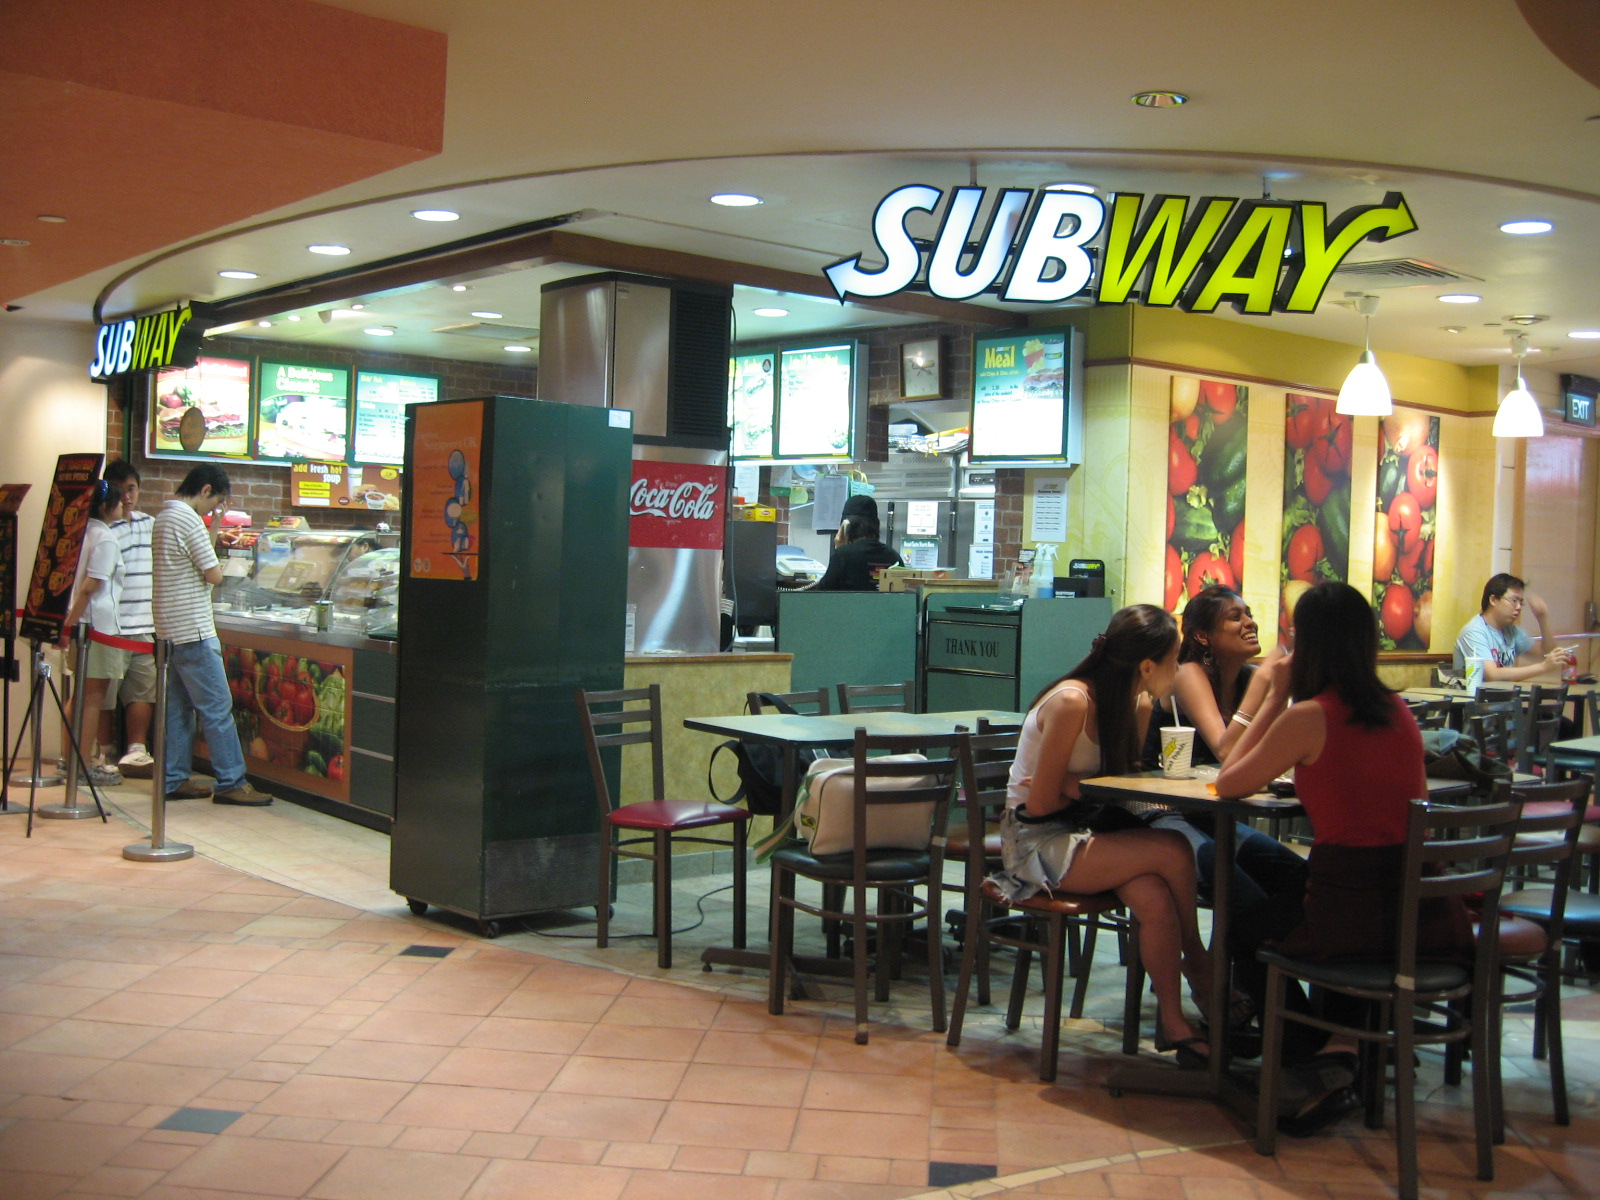 Subway (fastfoodketen)  Wikipedia